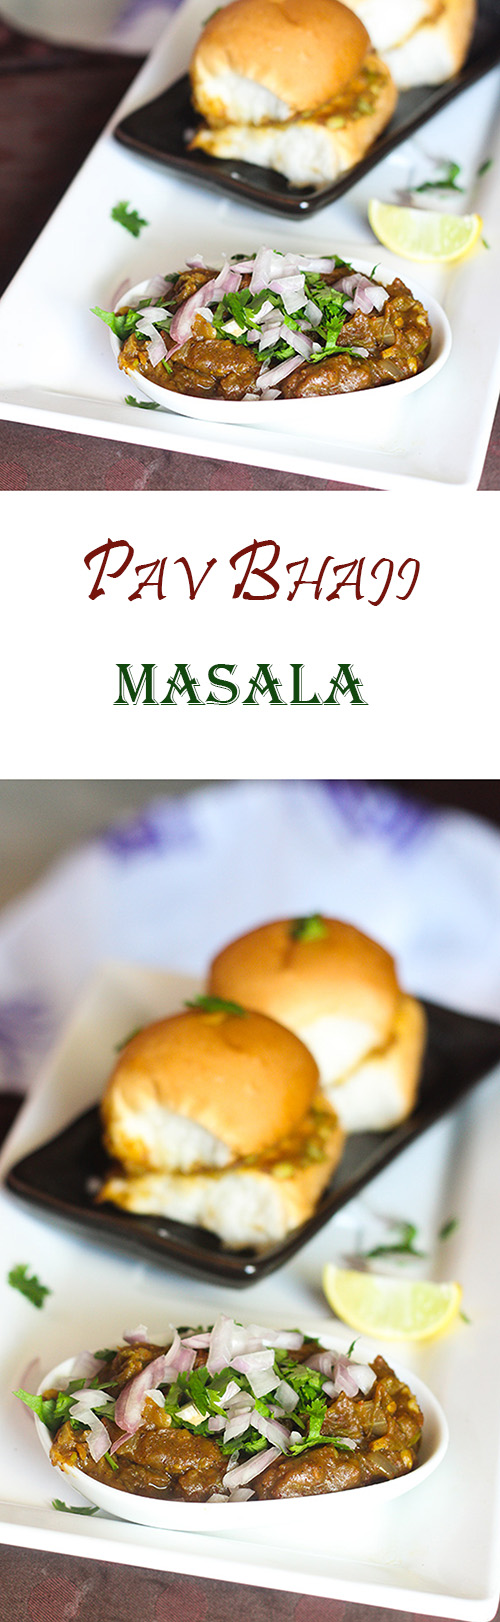 how to make pav bhaji masala at home video